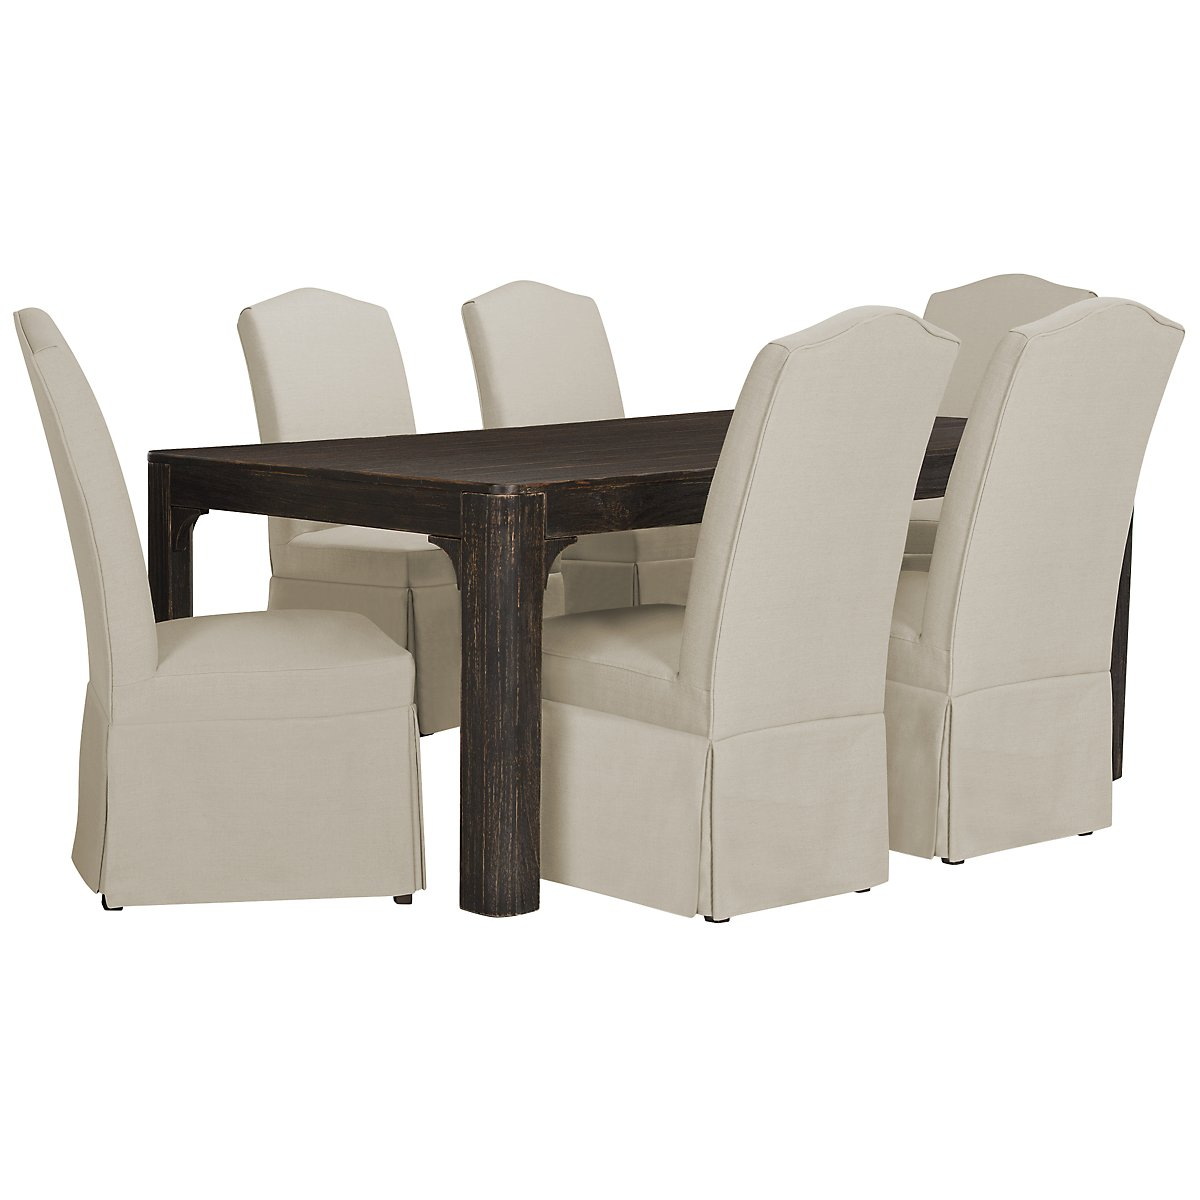 Bellagio Black Rectangular Table & 4 Upholstered Chairs